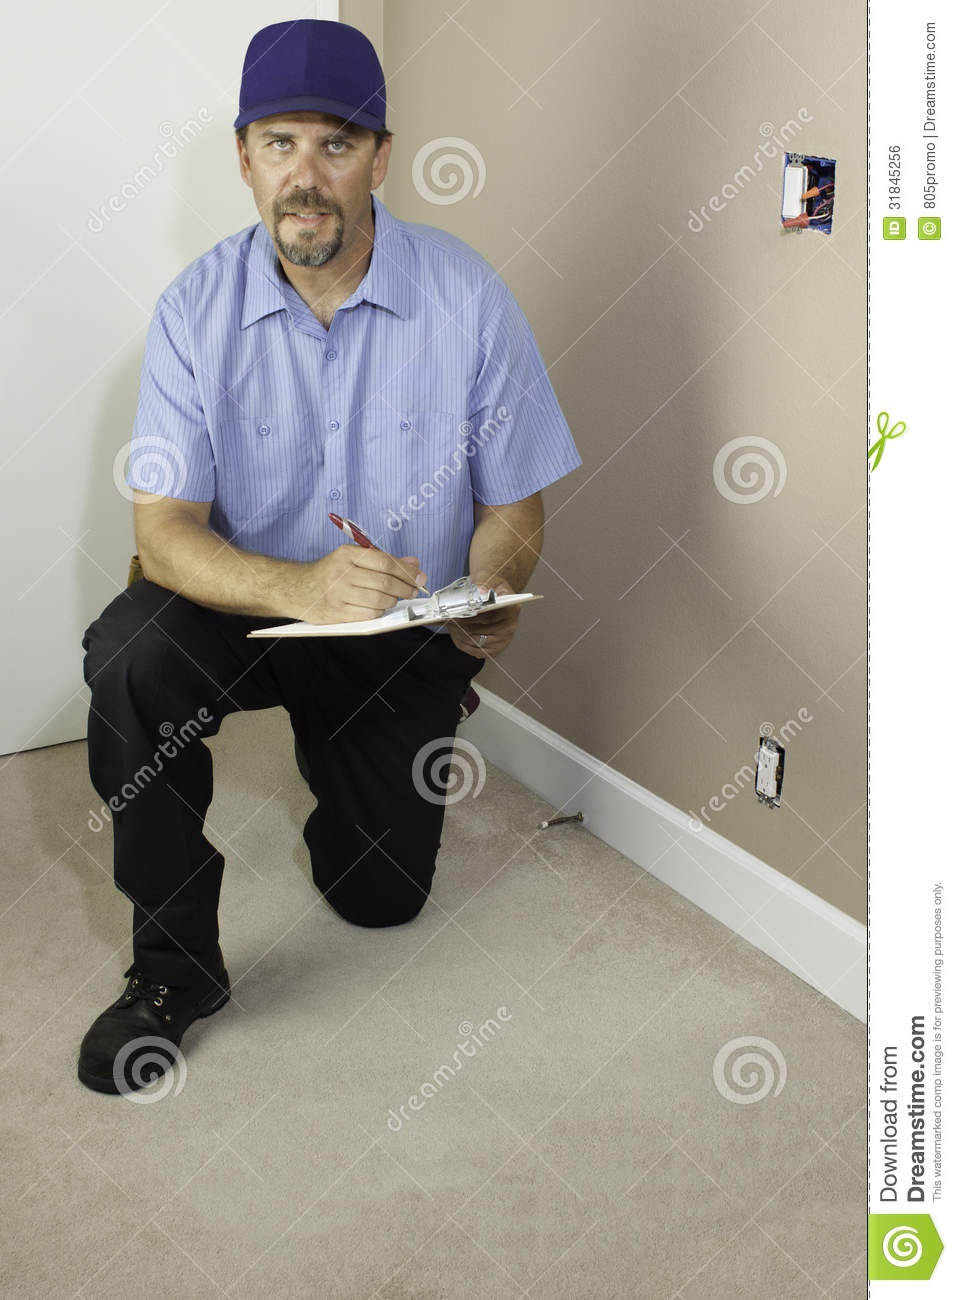 Service Man Kneeling With Clipboard Royalty Free Stock